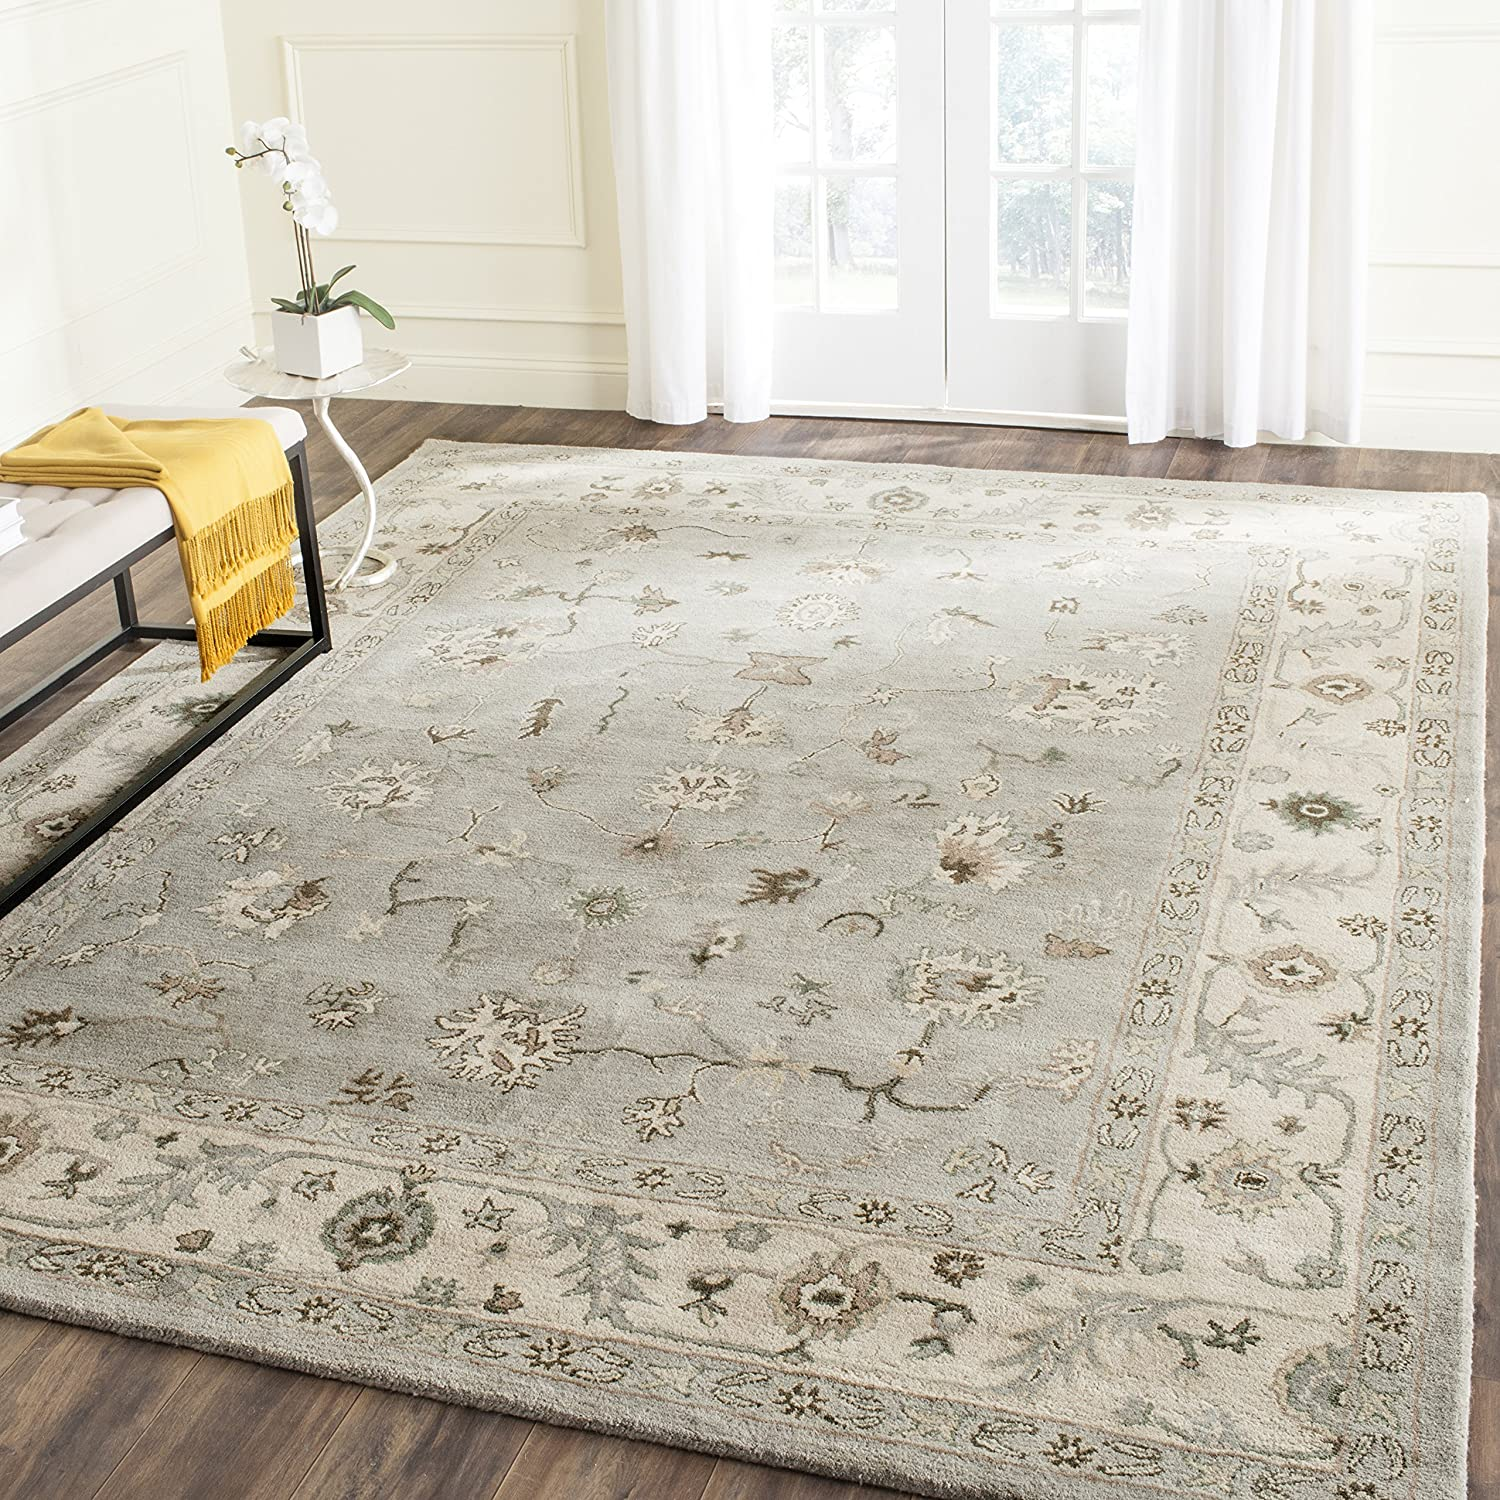 Safavieh Heritage Collection Hg865a Handmade Traditional Oriental Premium Wool Area Rug 9 X 12 Beige Grey Furniture Decor